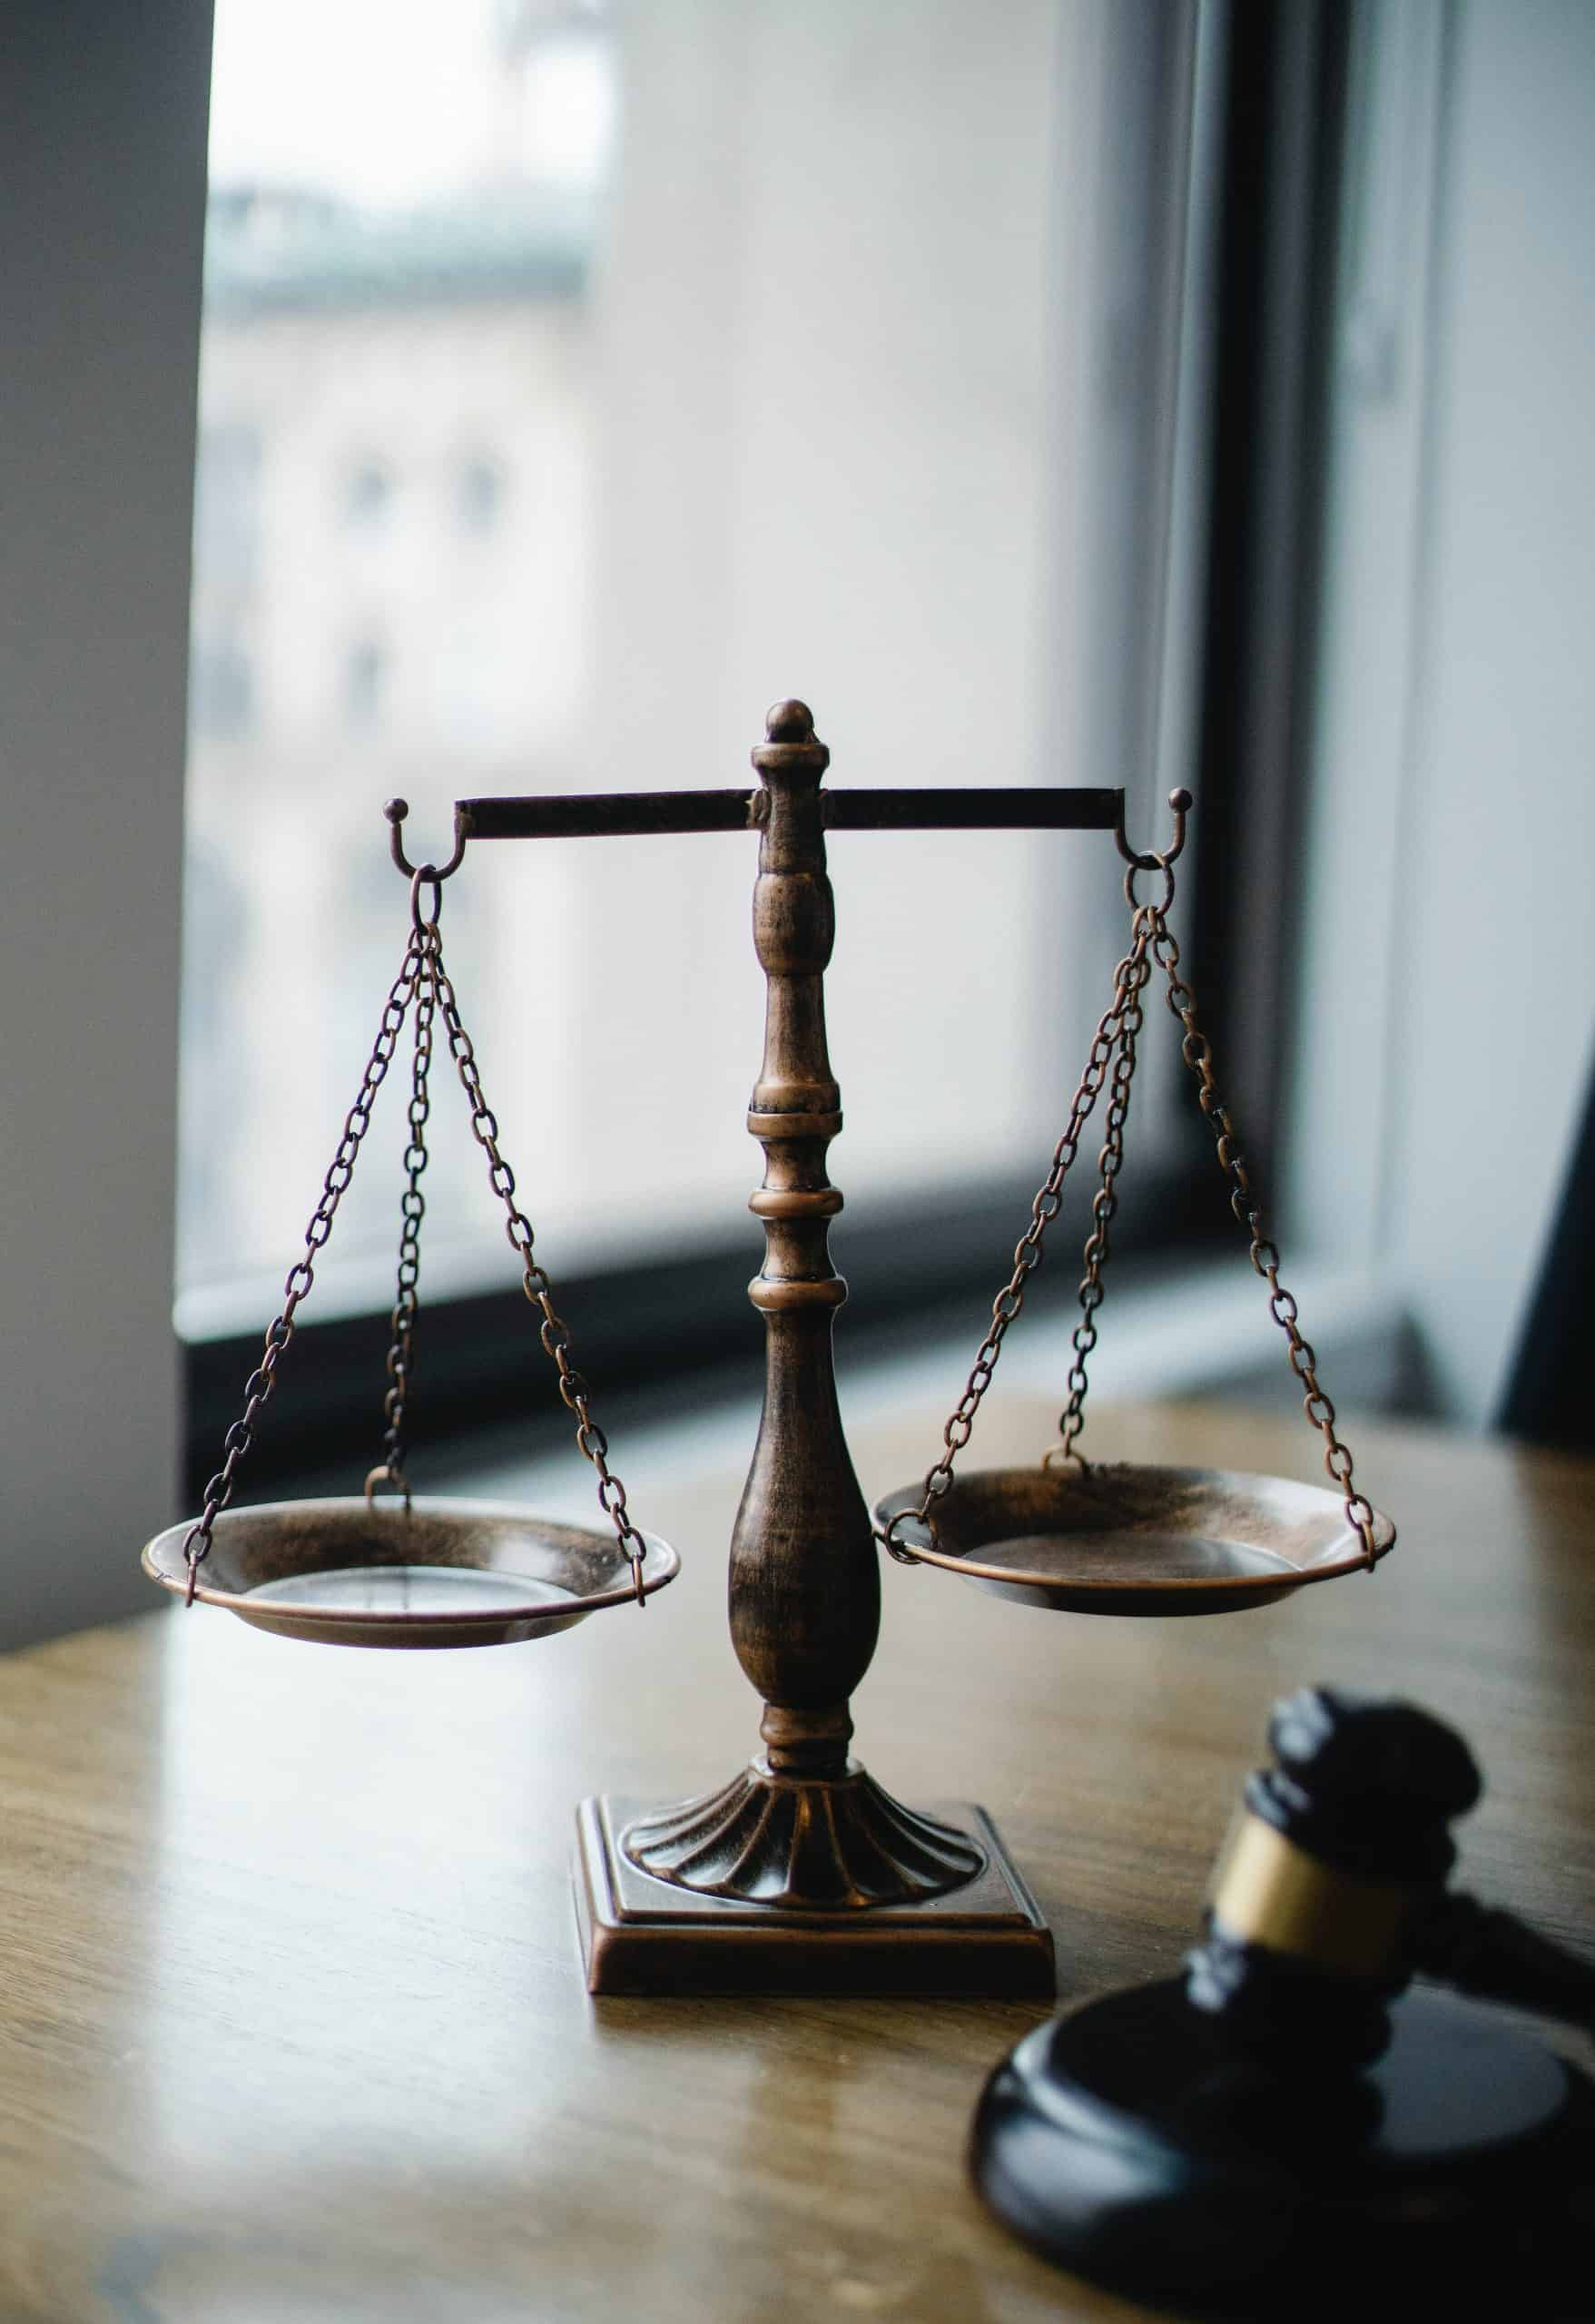 A judge's scale and gavel resting on a table